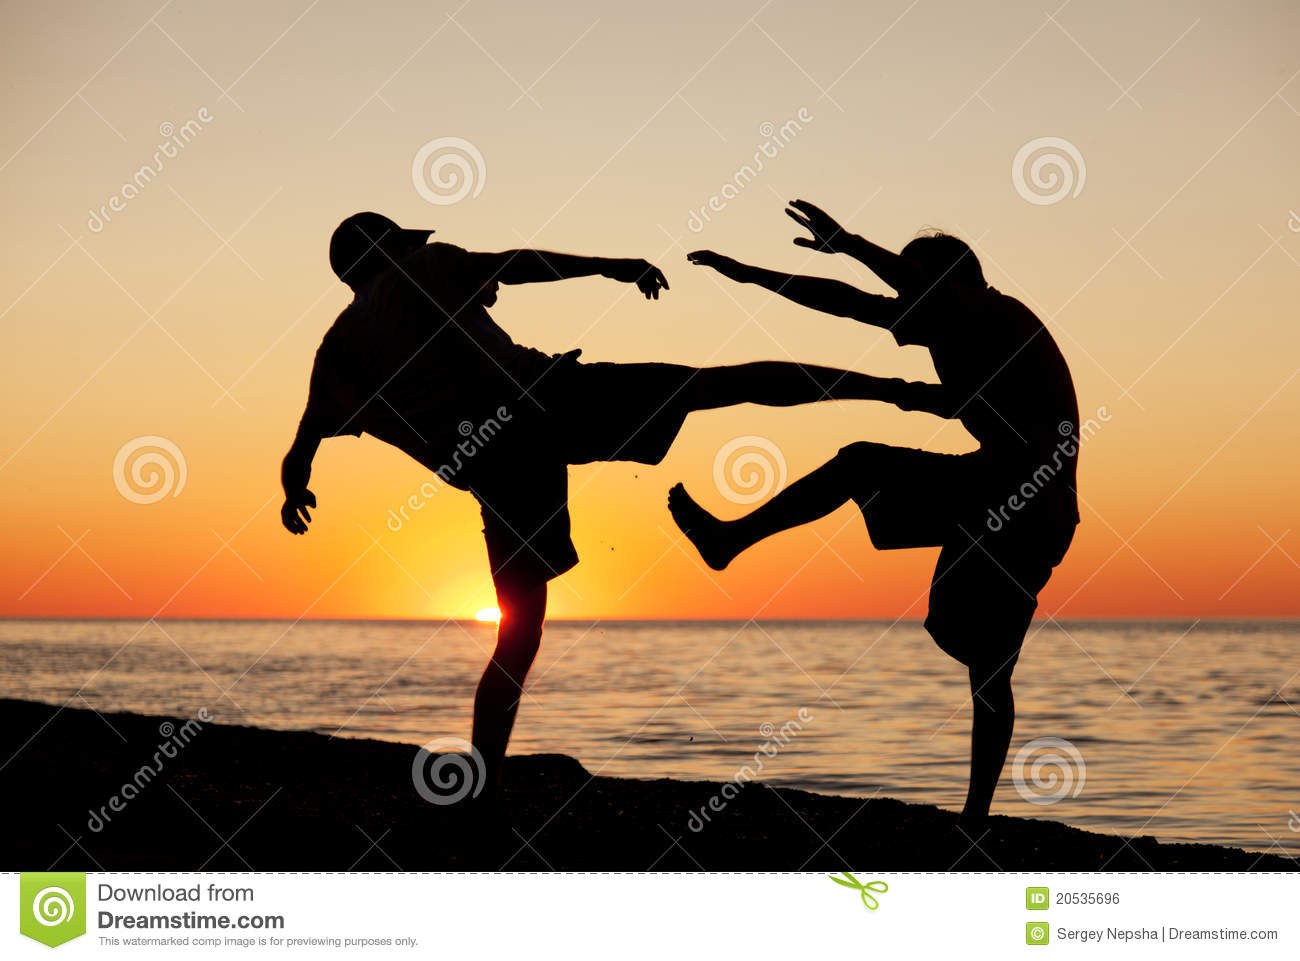 fight on a beach royalty free stock image image 20535696